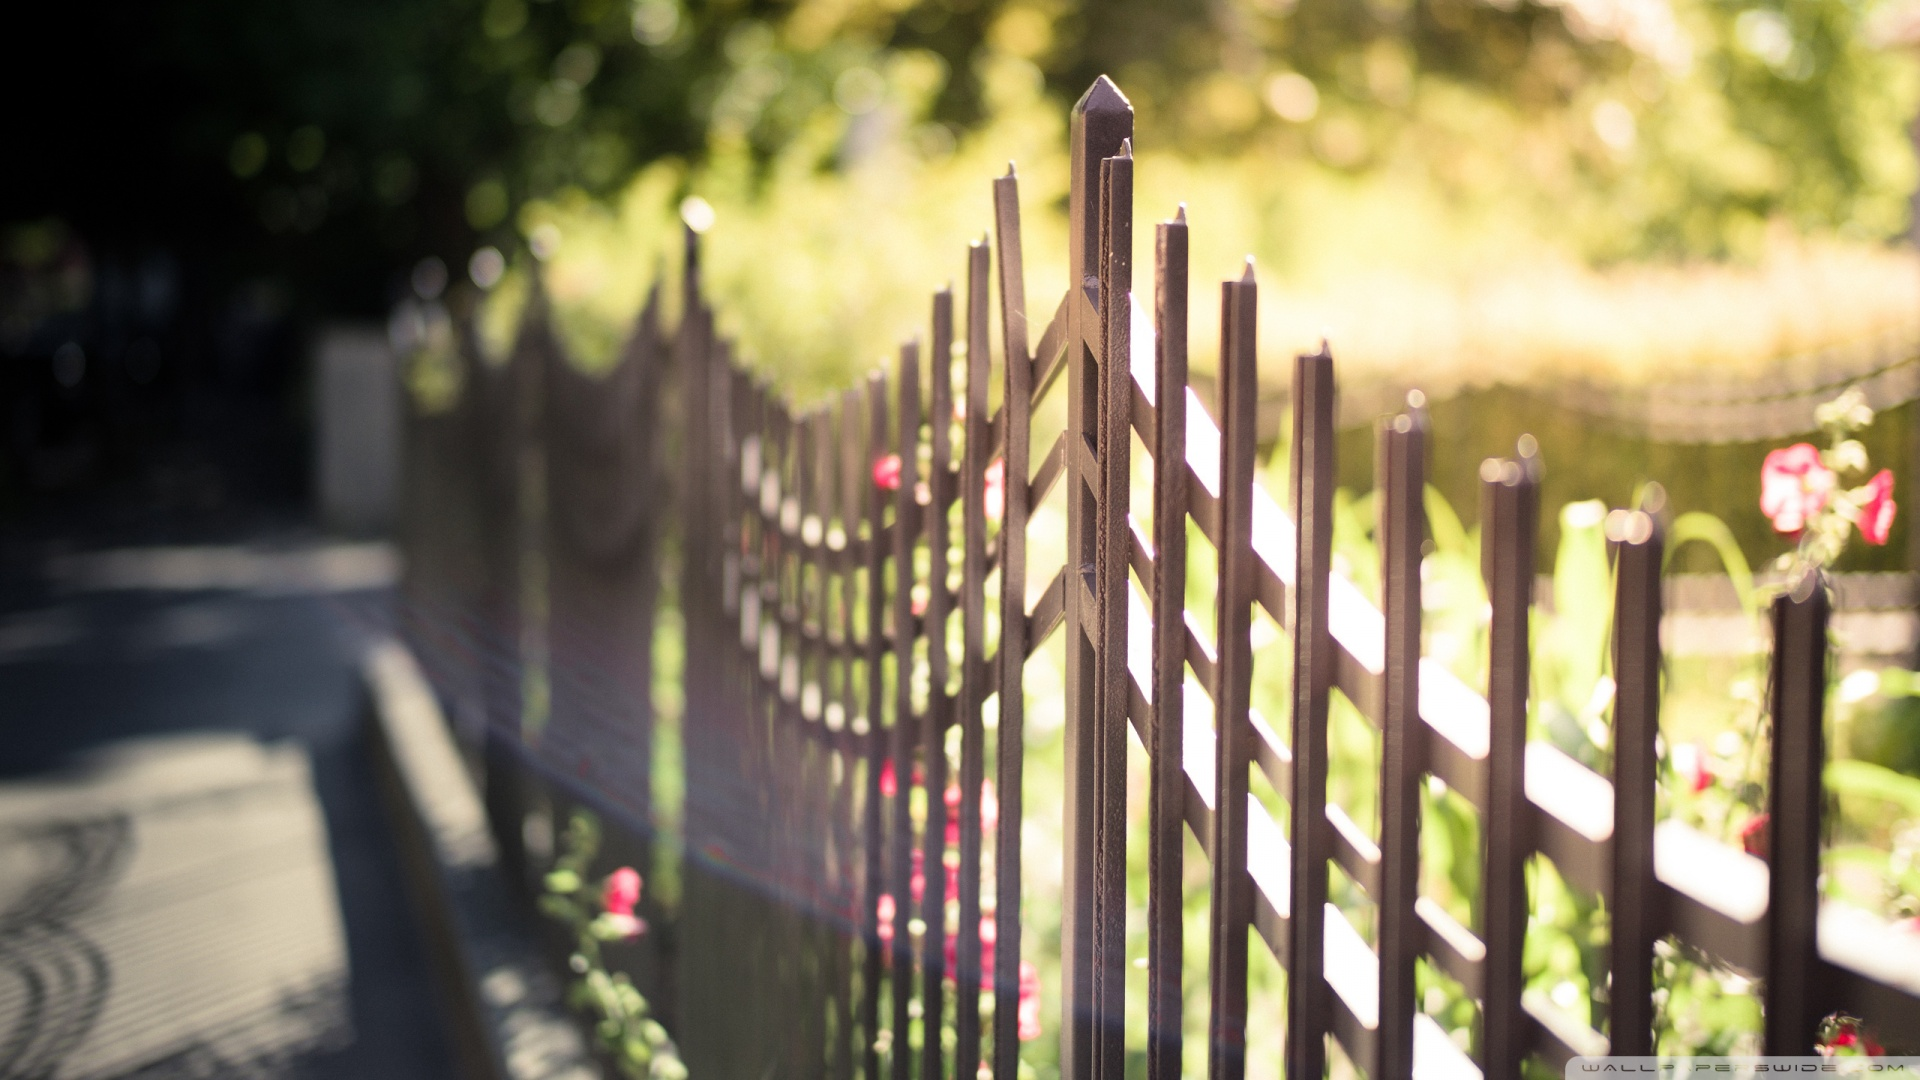 Metal Fence Wallpapers